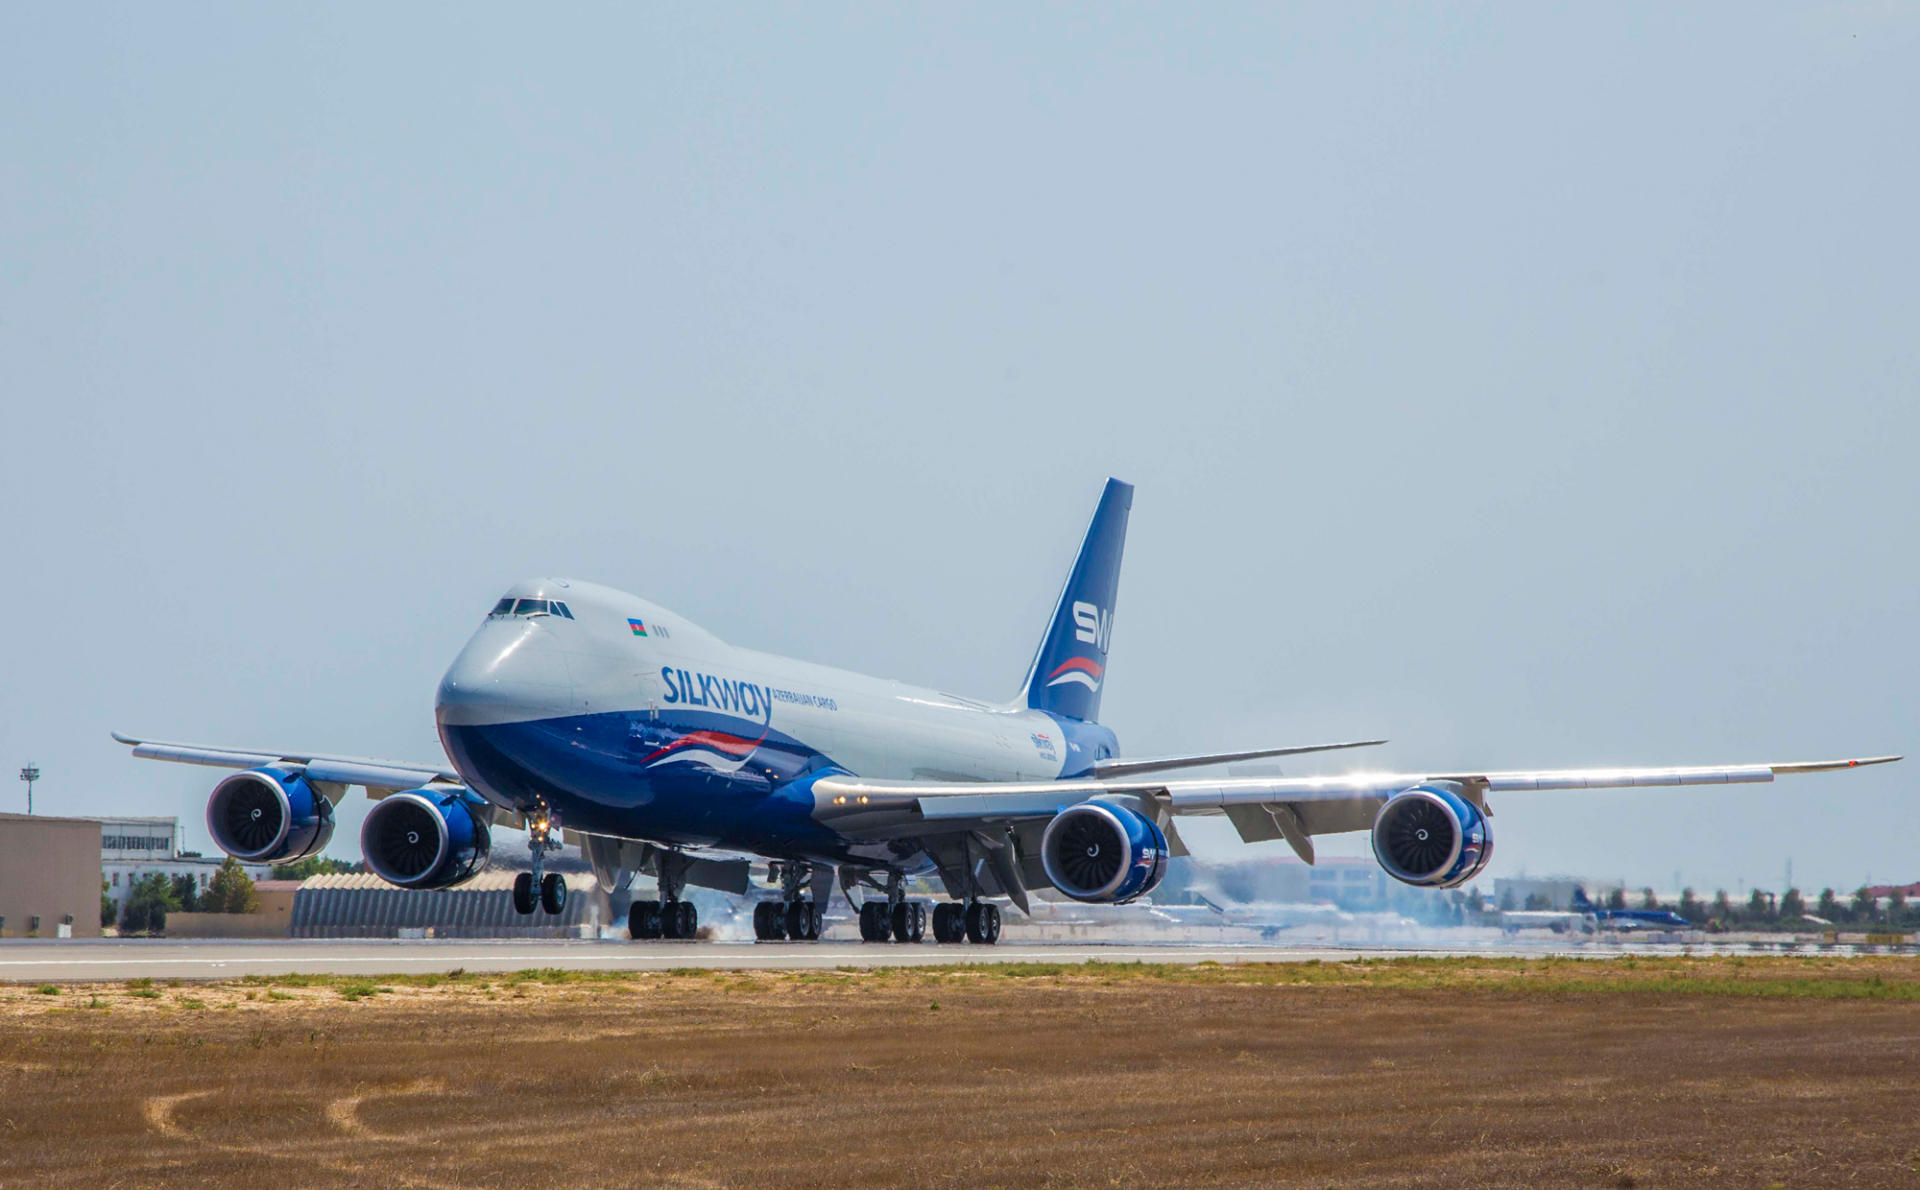 Silk Way Airlines expands fleet with another Boeing 747-8F freighter (PHOTO)